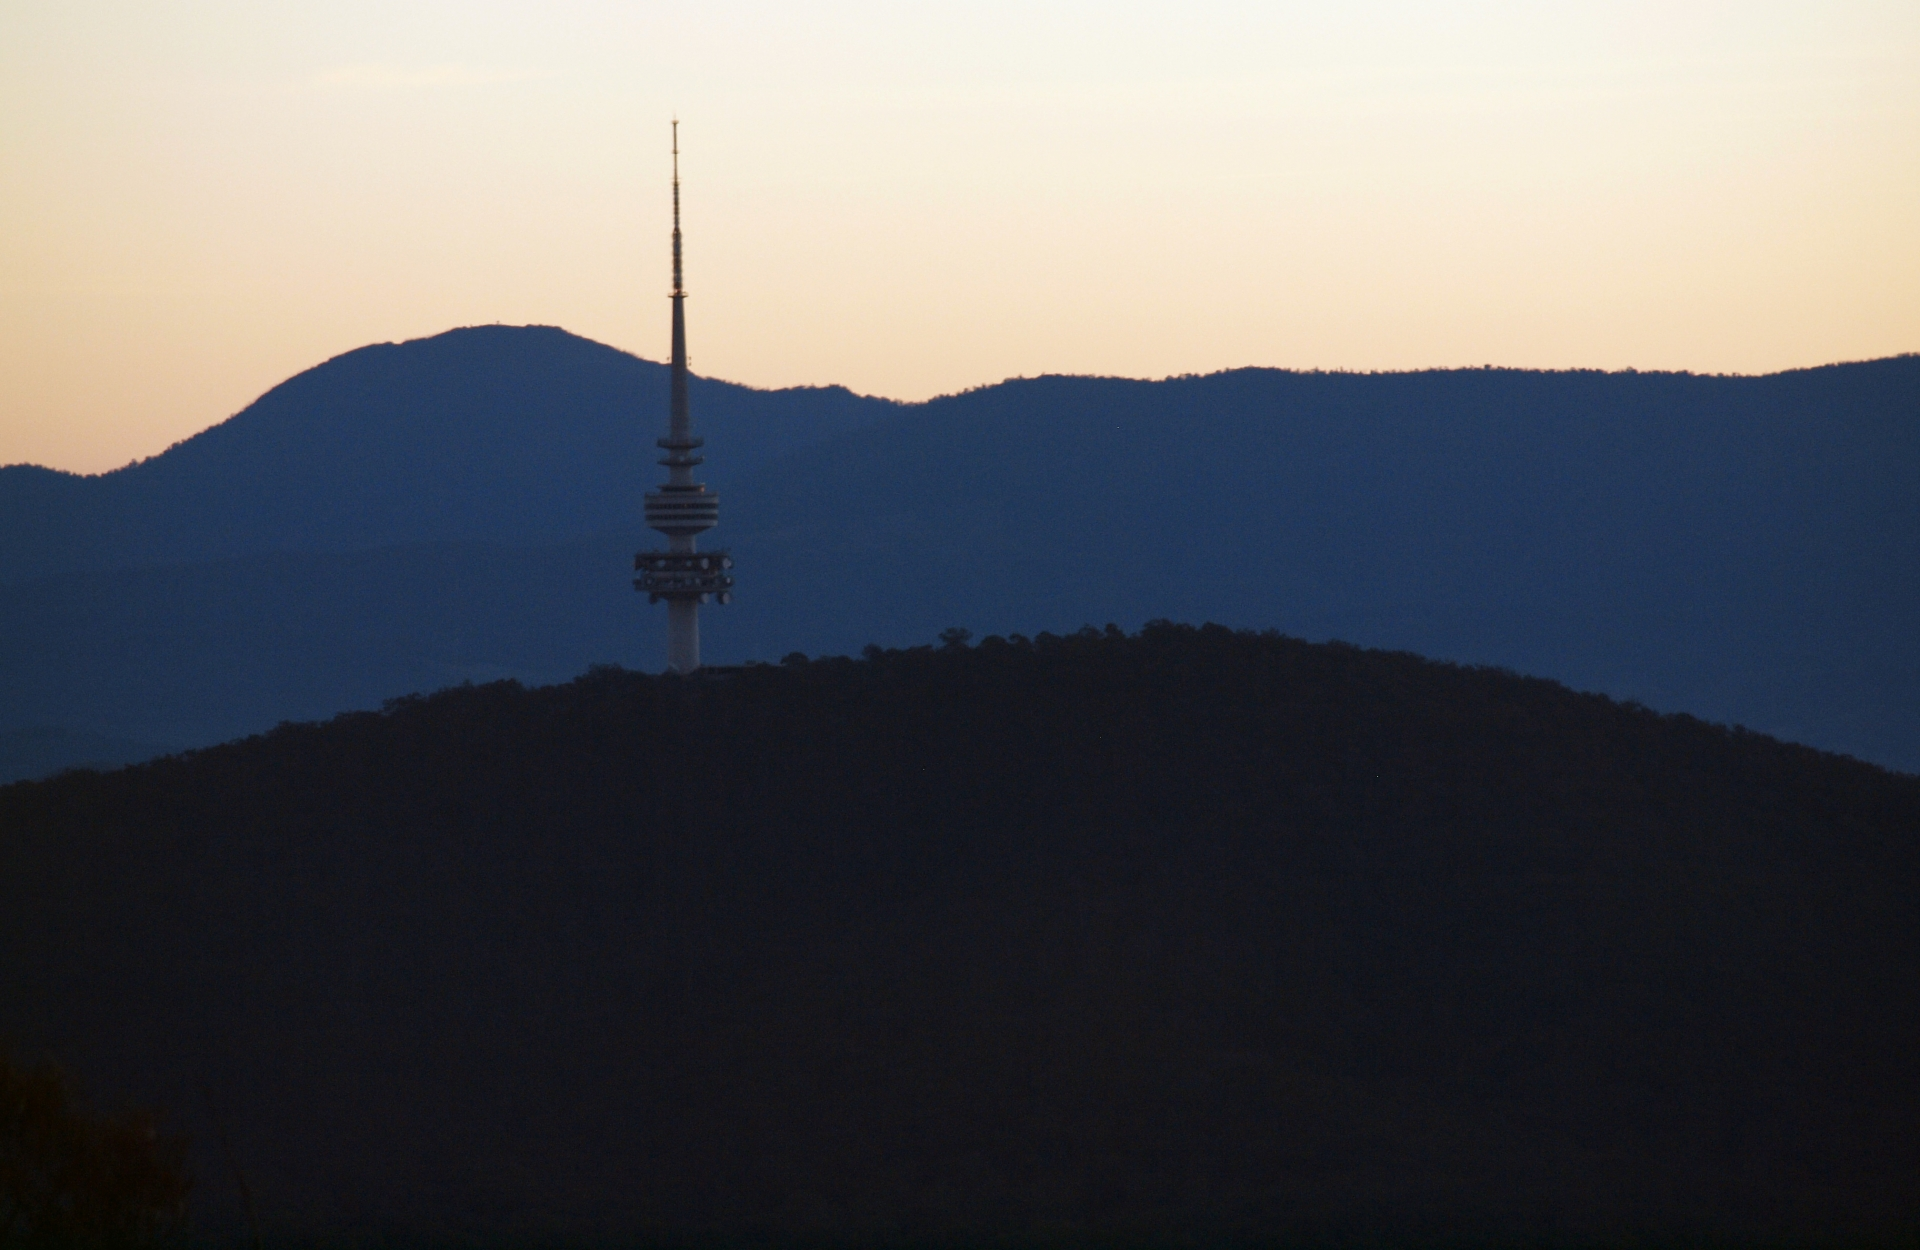 Tired Telstra Tower has sky high possibilities